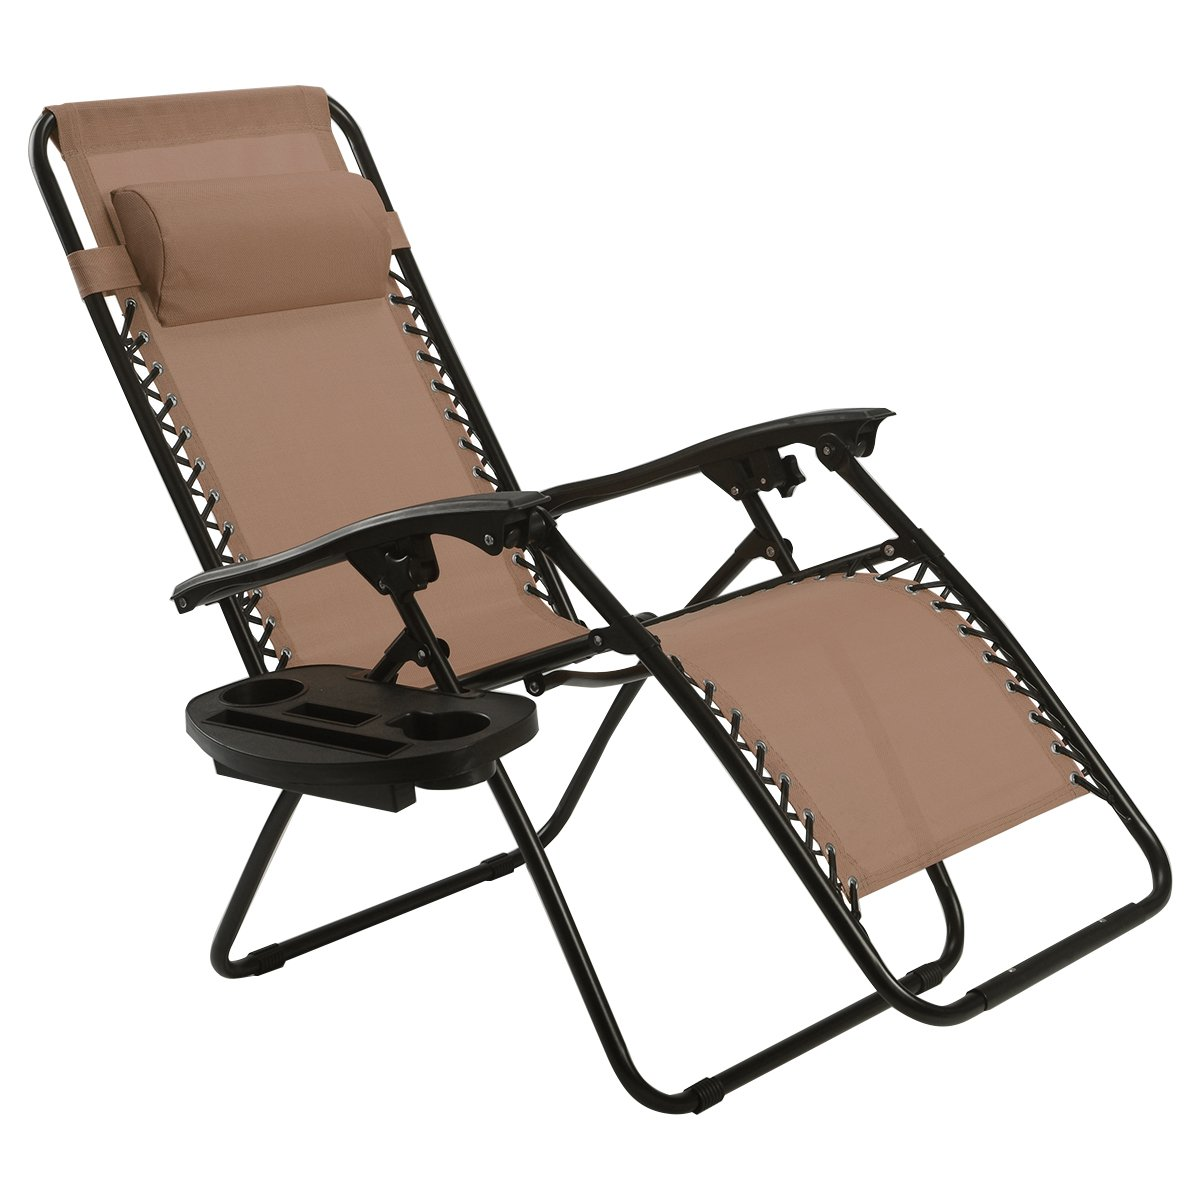 Amazon.com : Goplus Folding Zero Gravity Reclining Lounge Chairs Outdoor  Beach Patio W/Utility Tray (Brown) : Garden & Outdoor - Amazon.com : Goplus Folding Zero Gravity Reclining Lounge Chairs